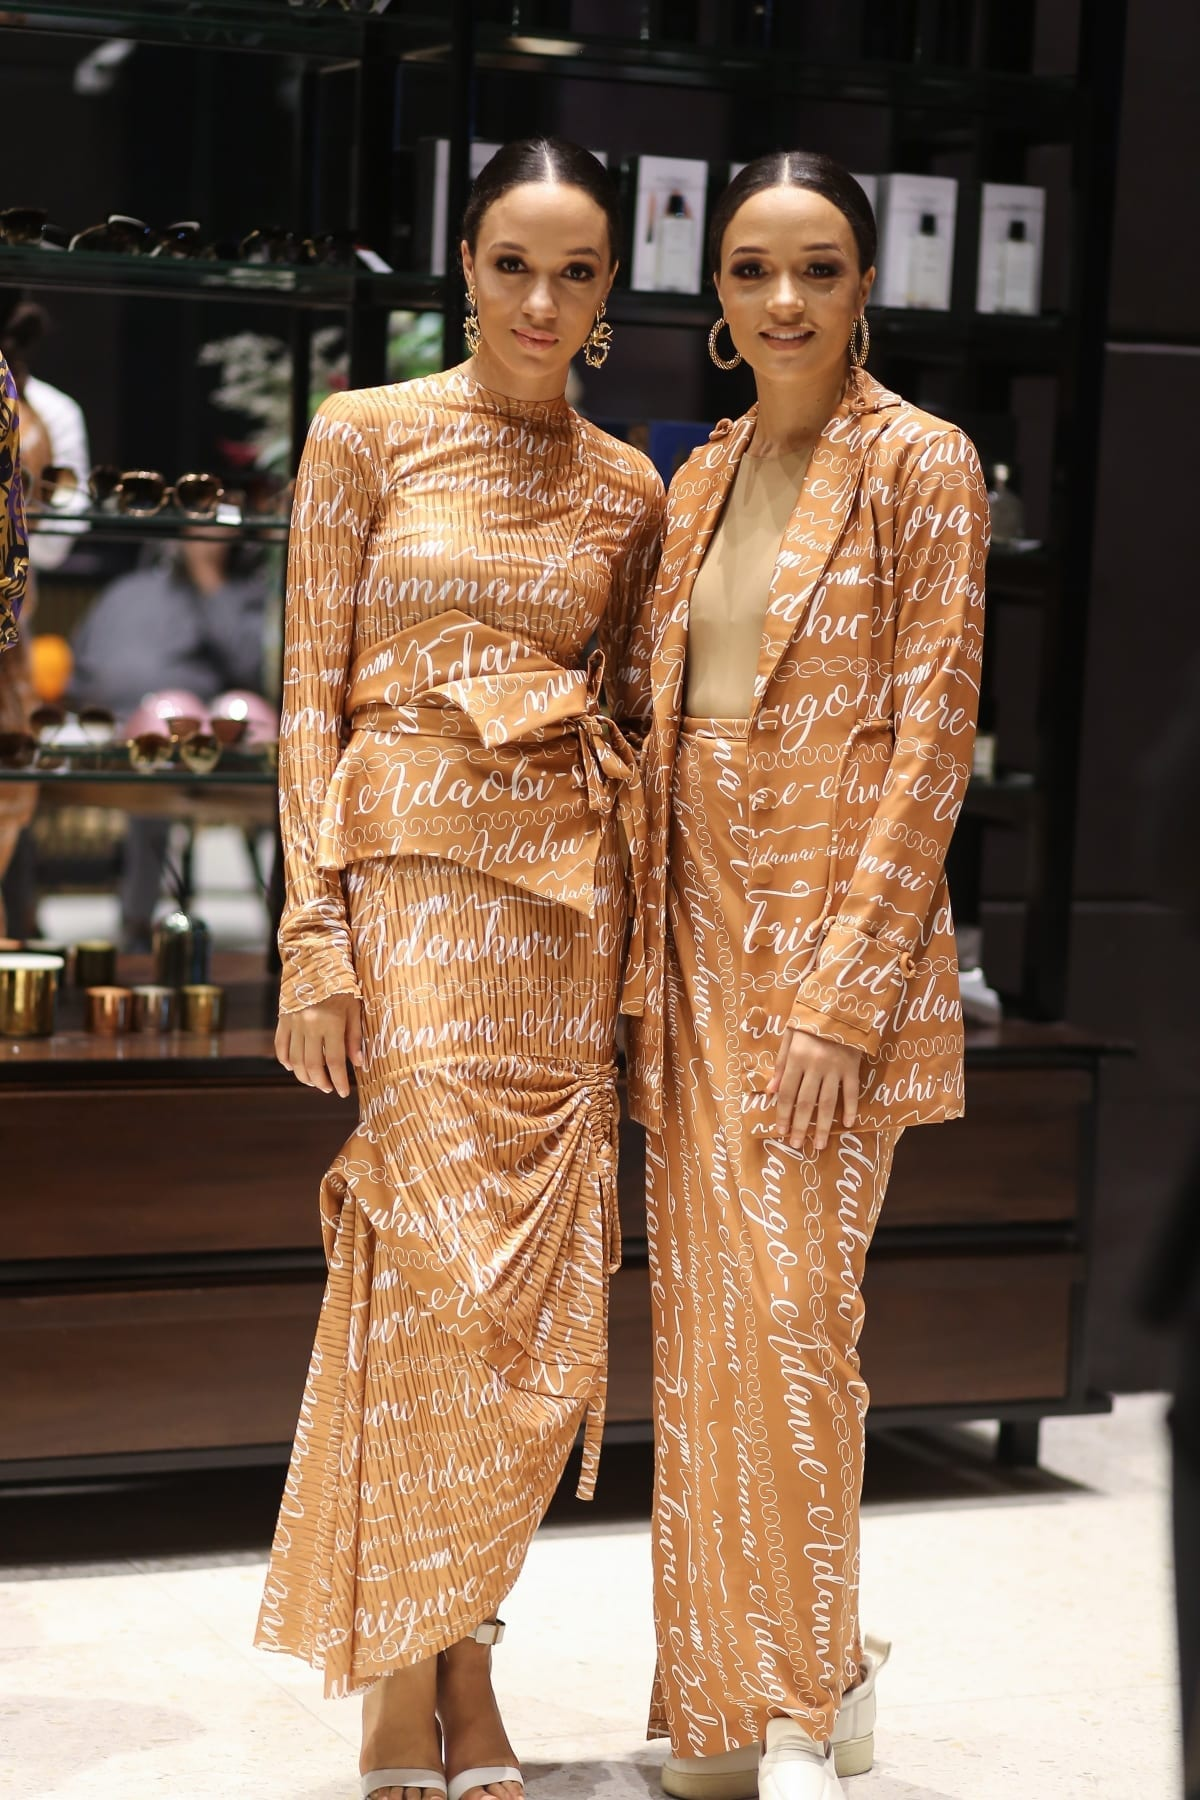 Popular Nigerian celebrities you didn't know are twins